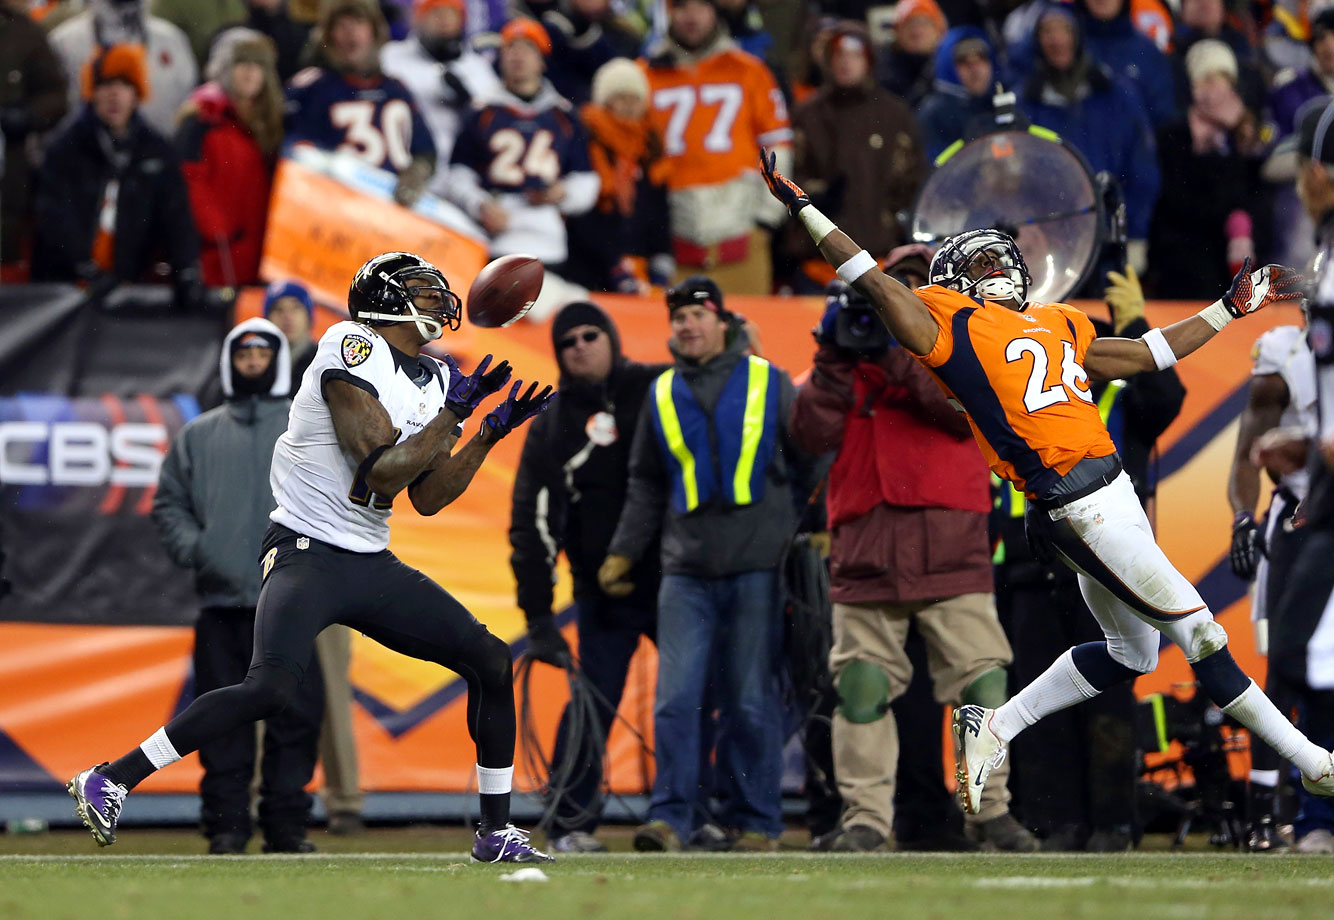 "The Ravens trailed by seven points and faced a third-and-3 at their 30-yard line with just 44 seconds remaining when Joe Flacco threw deep downfield. A Denver defender mistimed his jump to knock the ball away, and Jacoby Jones pulled it in and ran into the end zone to tie the game on ""The Mile High Miracle."" Baltimore then won in OT."